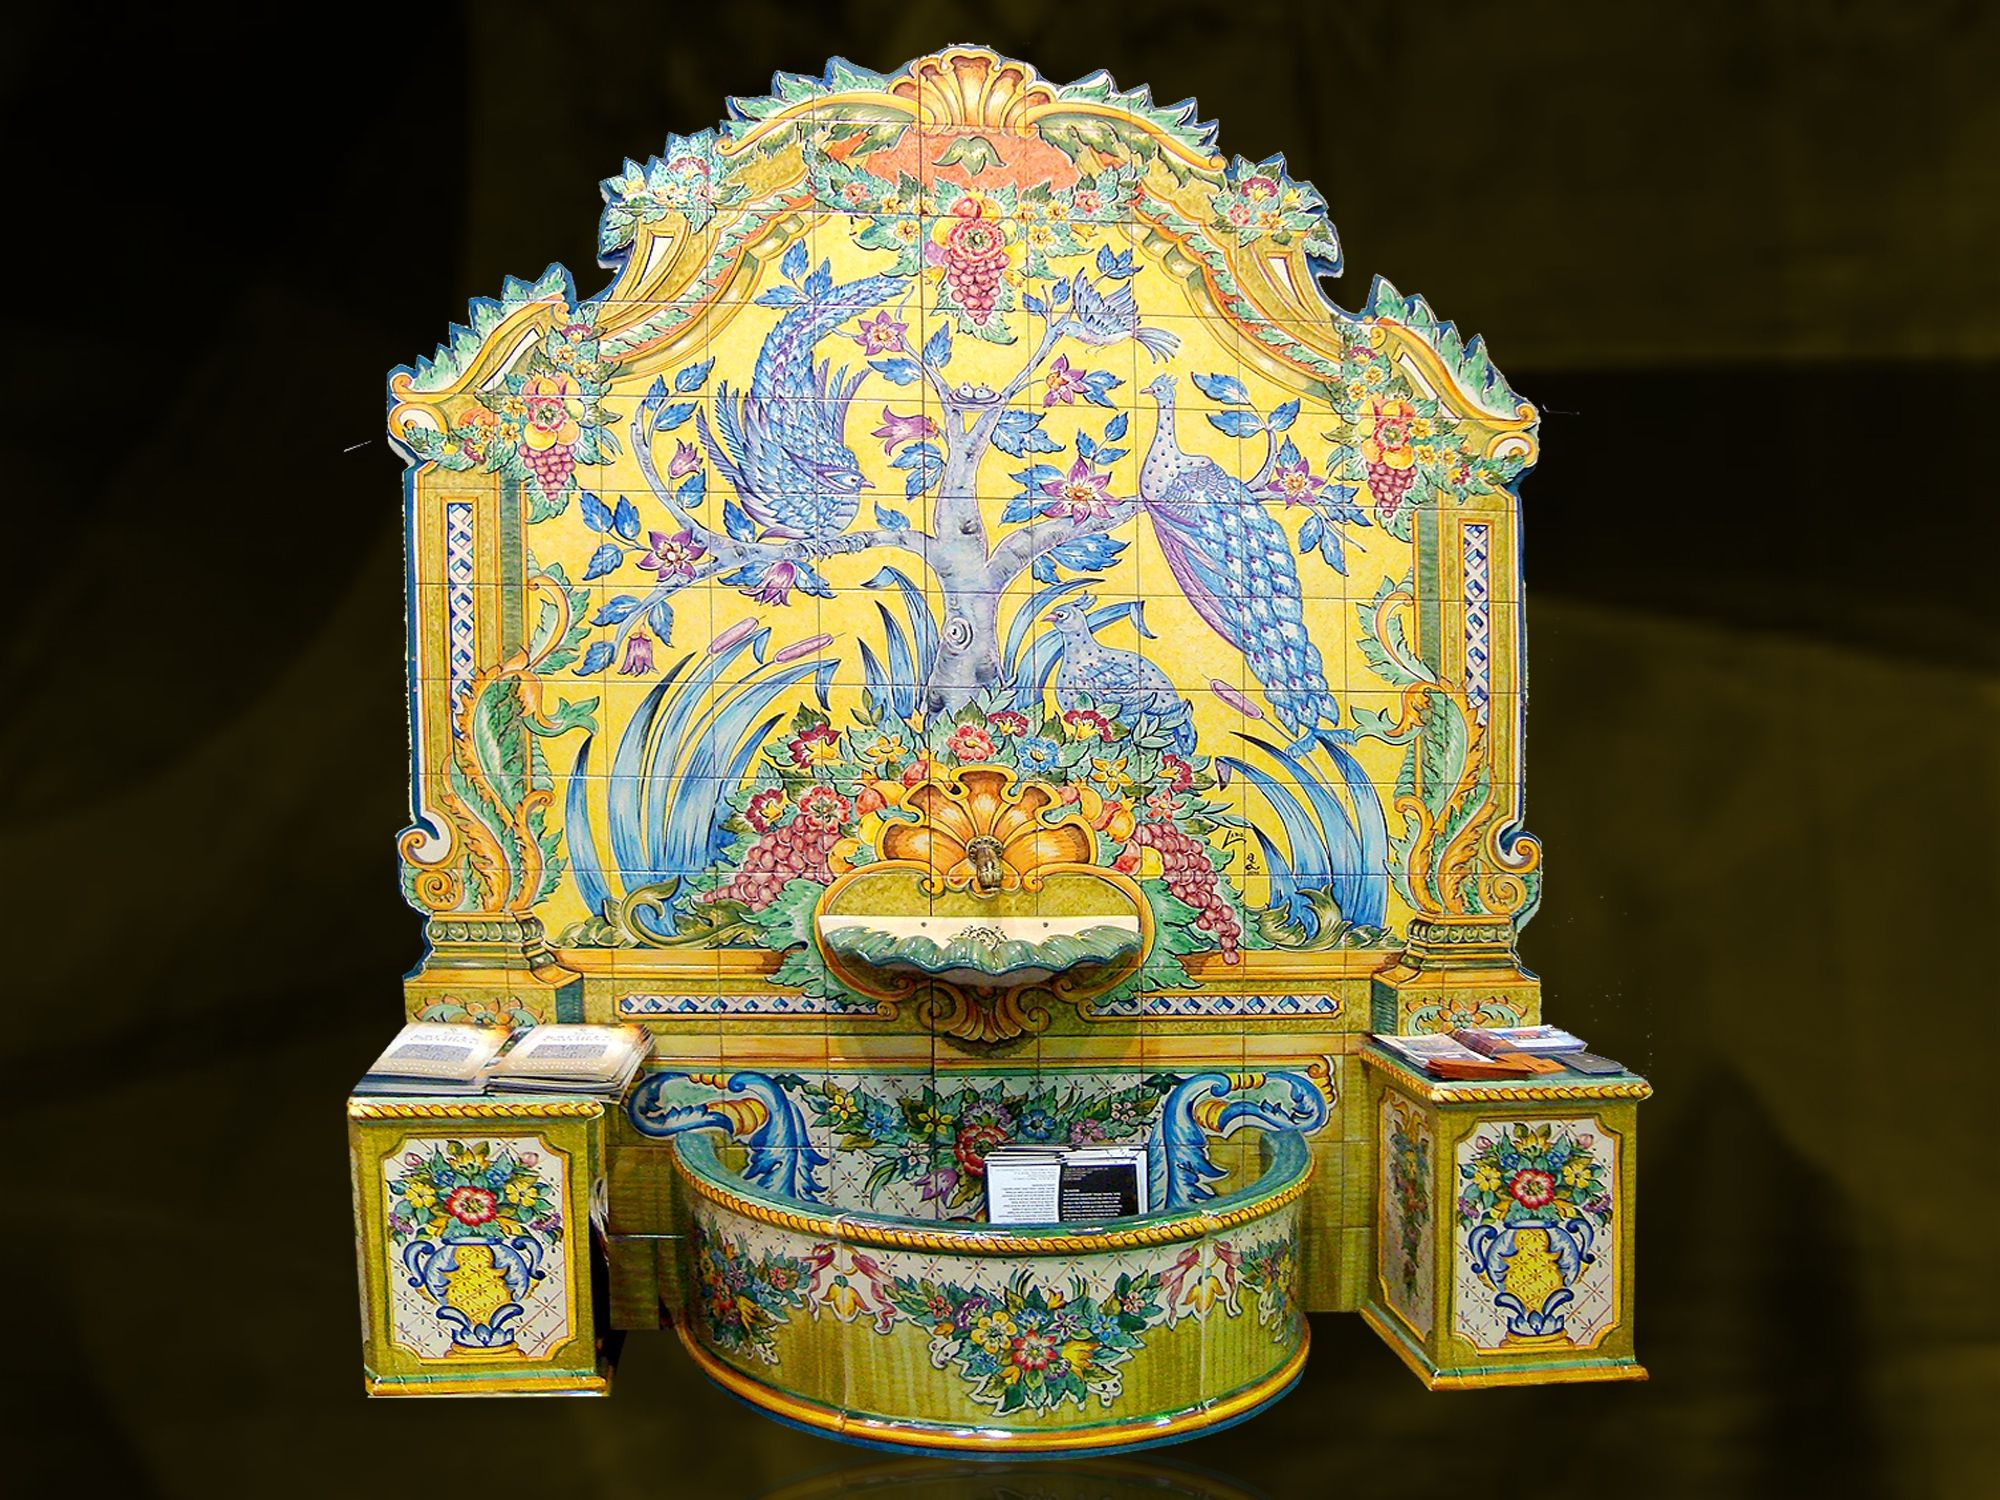 Handpainted Tile Fountain | Fountains | Pinterest | Paintings